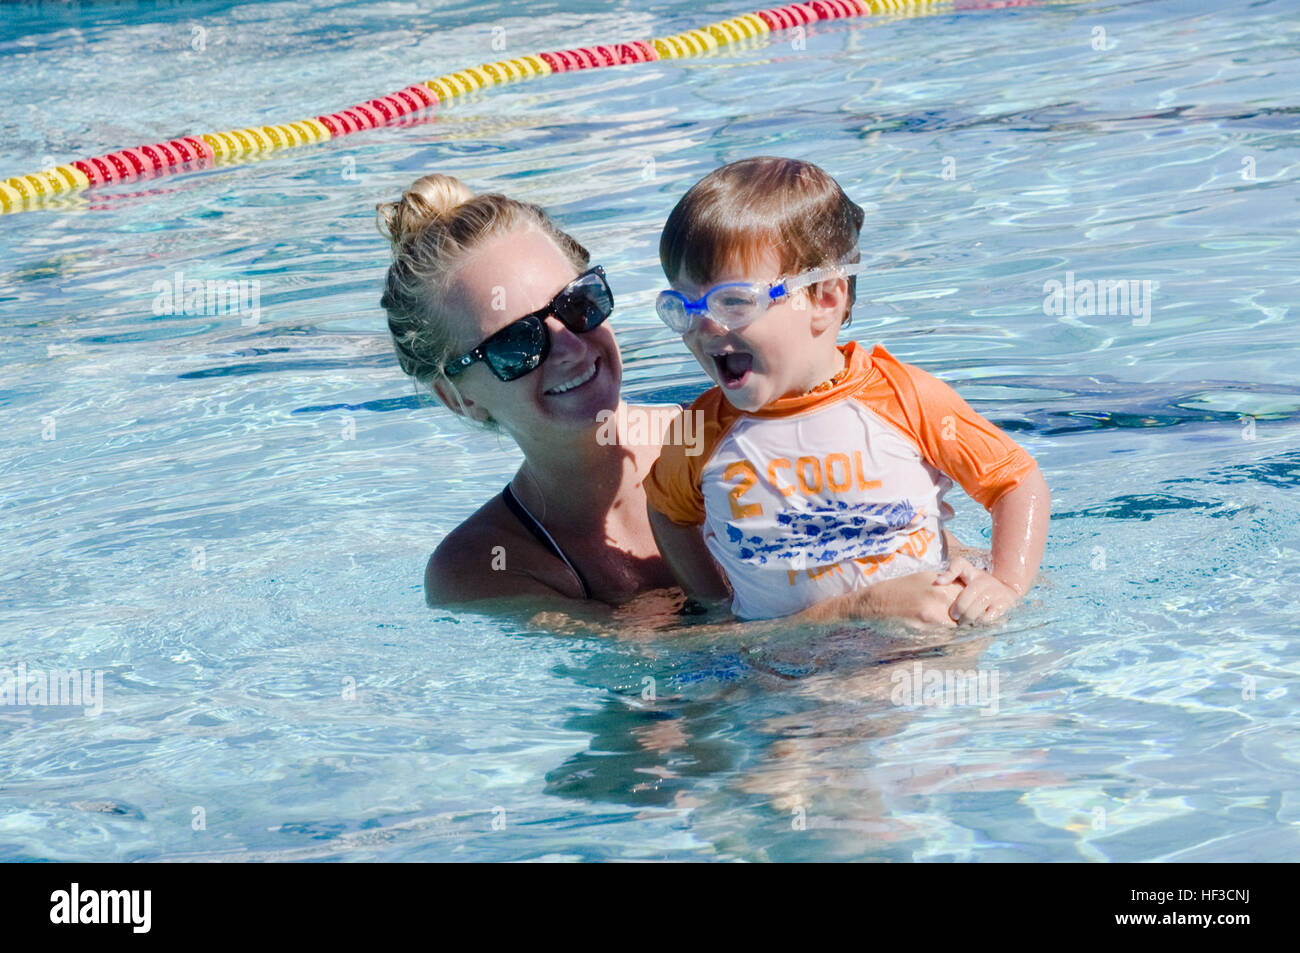 Lj szalai water safety instructor certified swim instructor lj szalai water safety instructor certified swim instructor engages in a swimming lesson with andrew thiel 3 at the base pool june 9 2015 1betcityfo Image collections